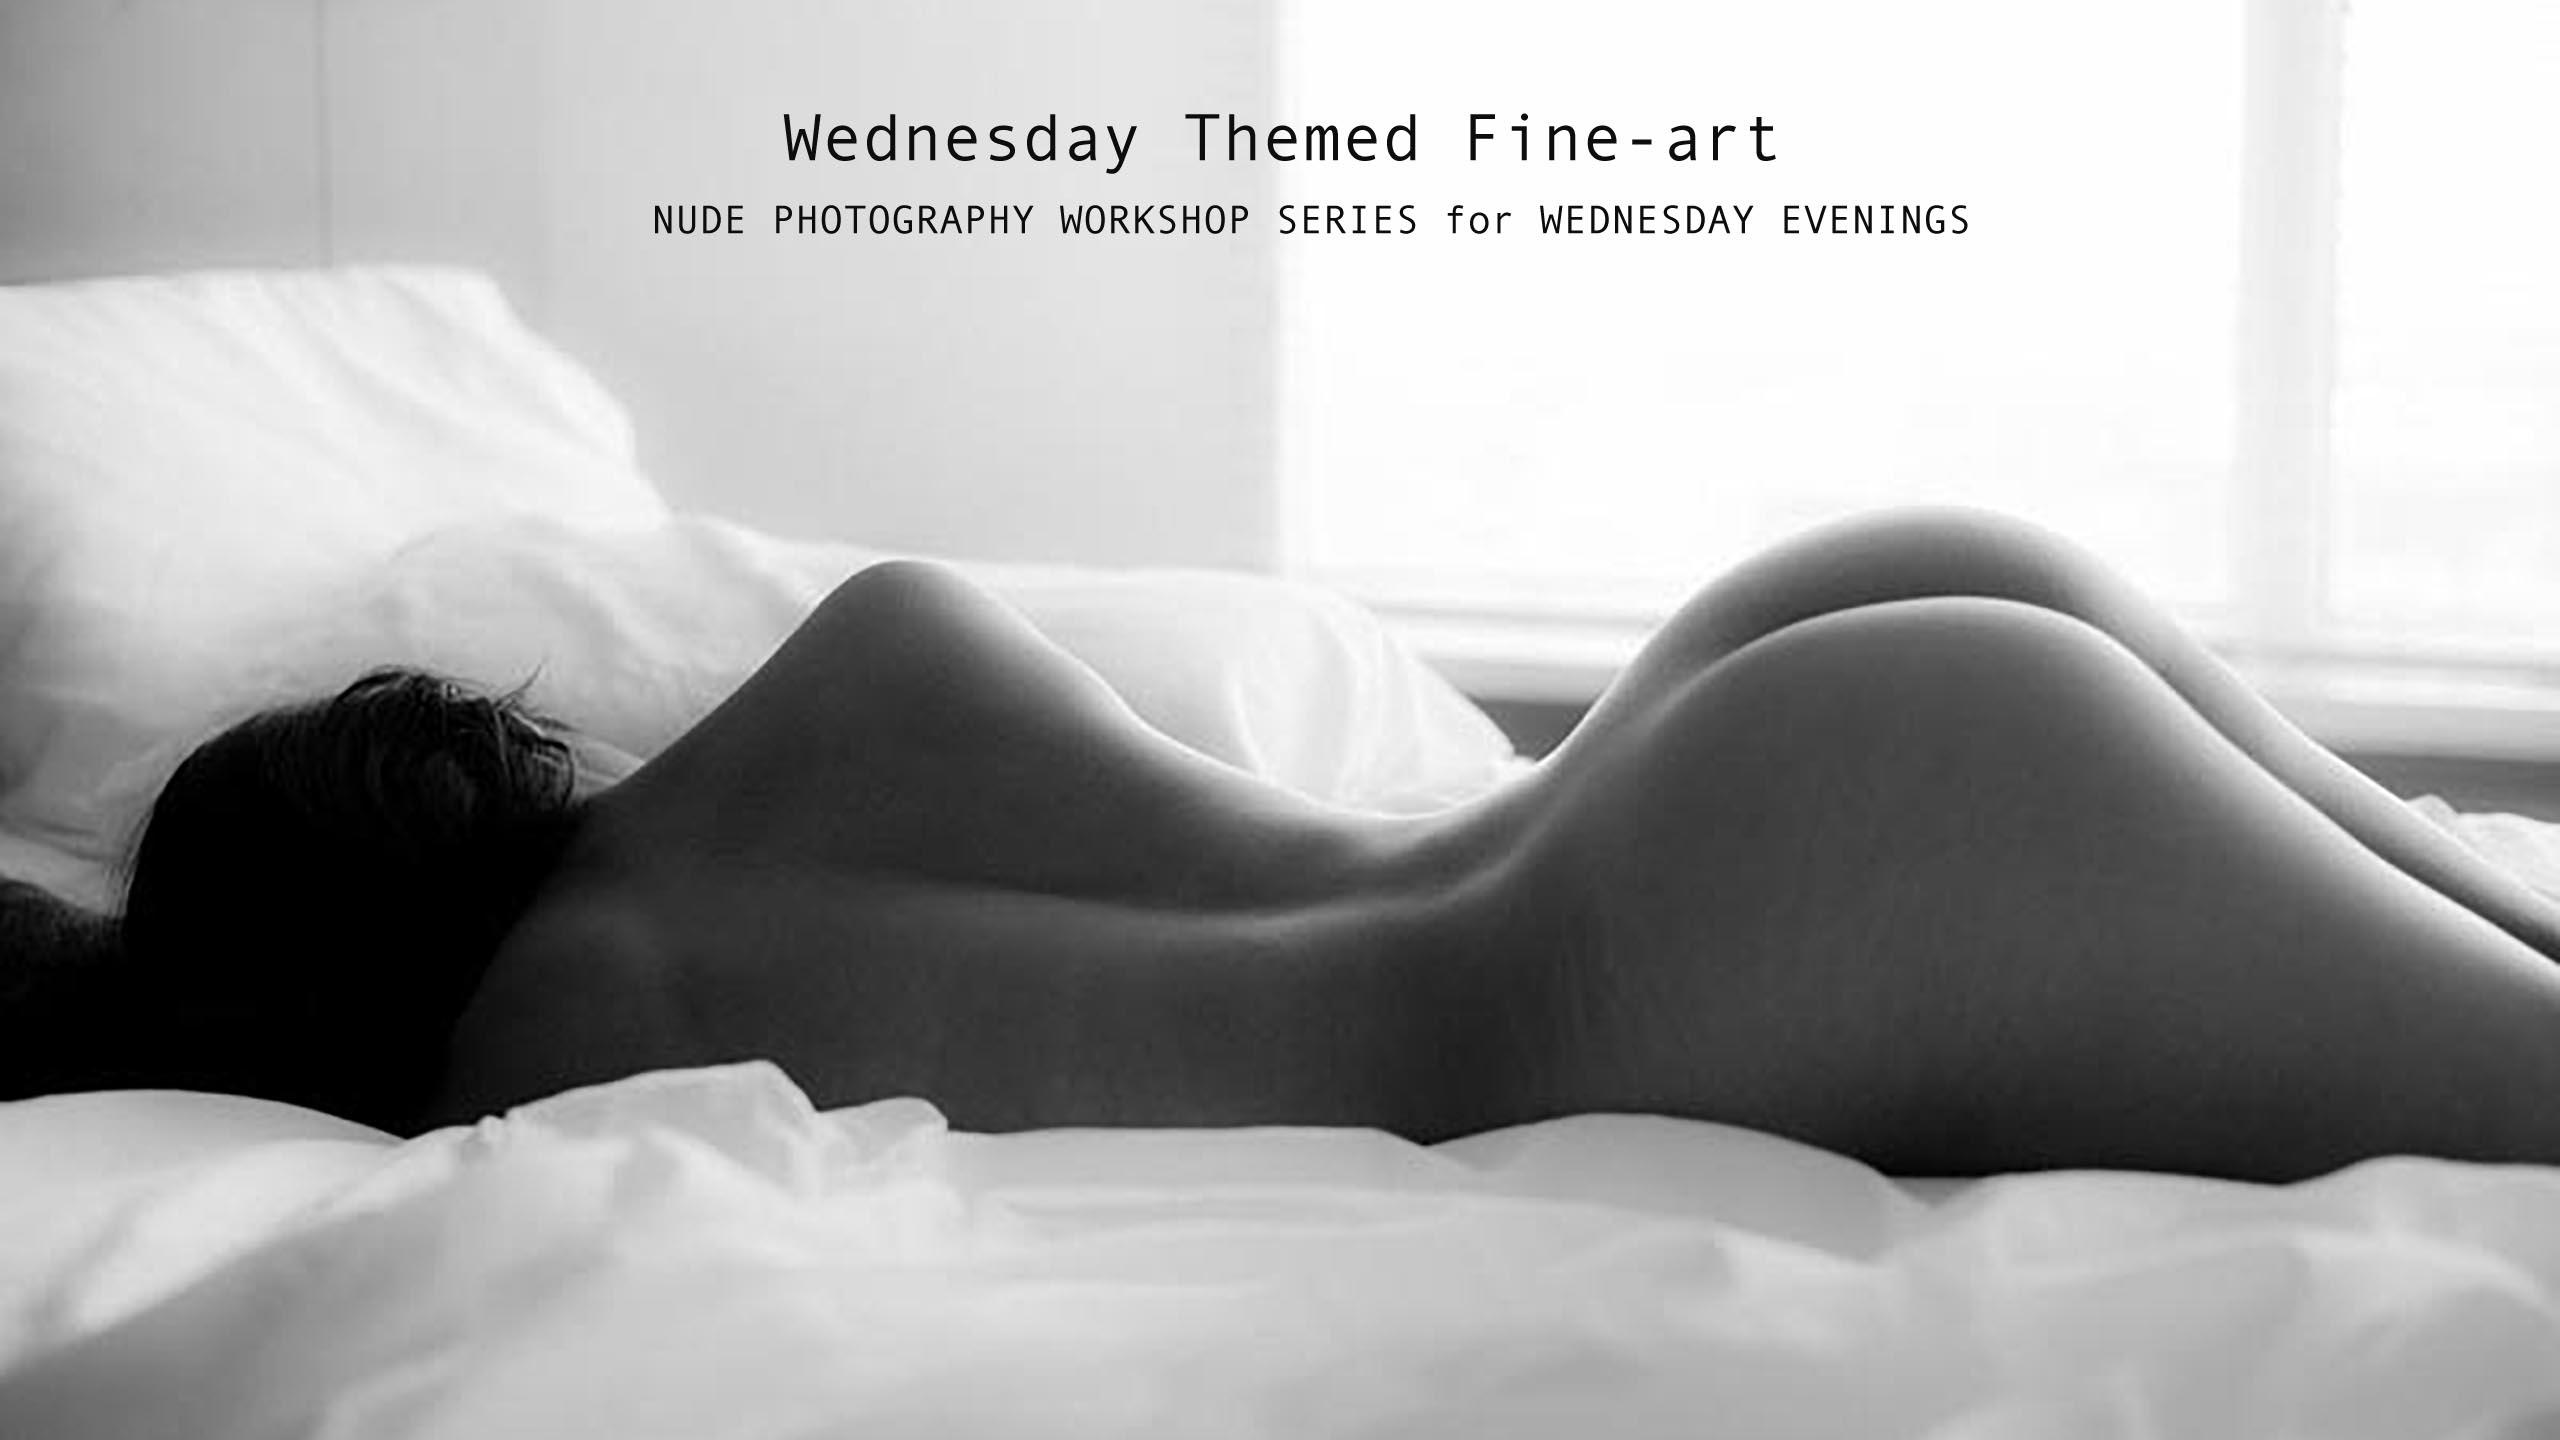 Wednesday Themed Fine-art NUDE PHOTOGRAPHY WORKSHOP SERIES